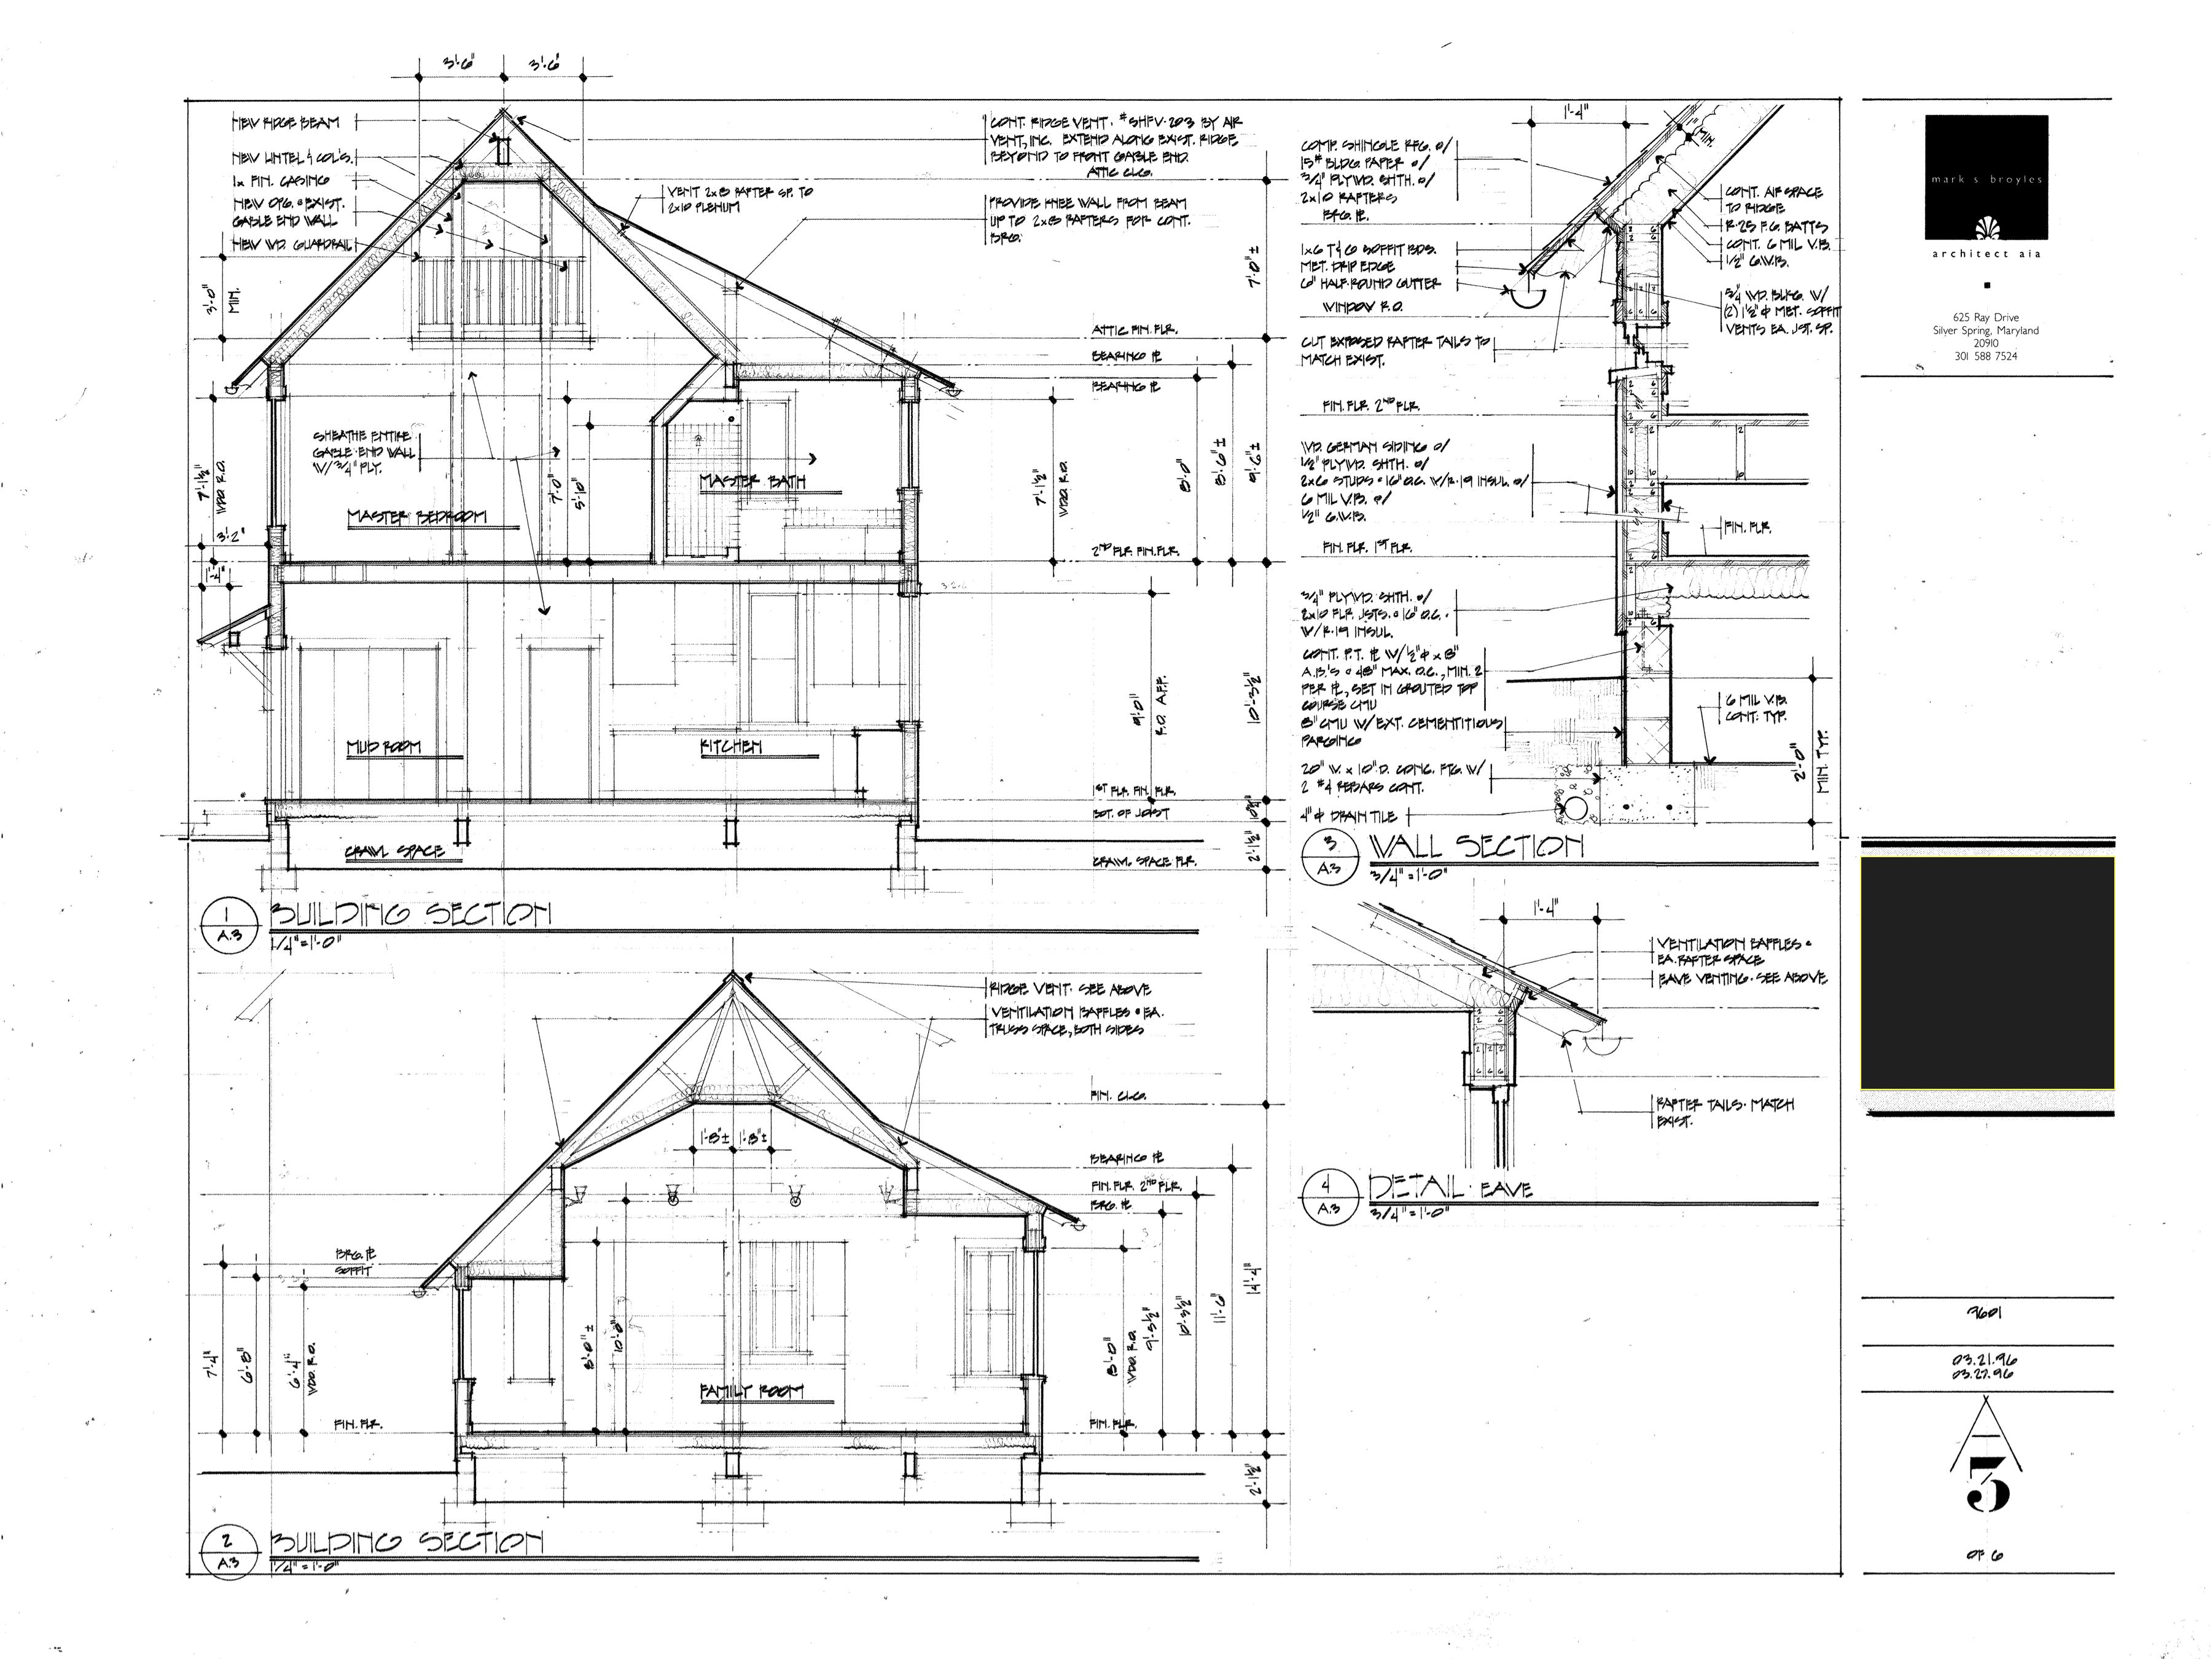 Residential addition working drawing building sections for Residential architectural drawings